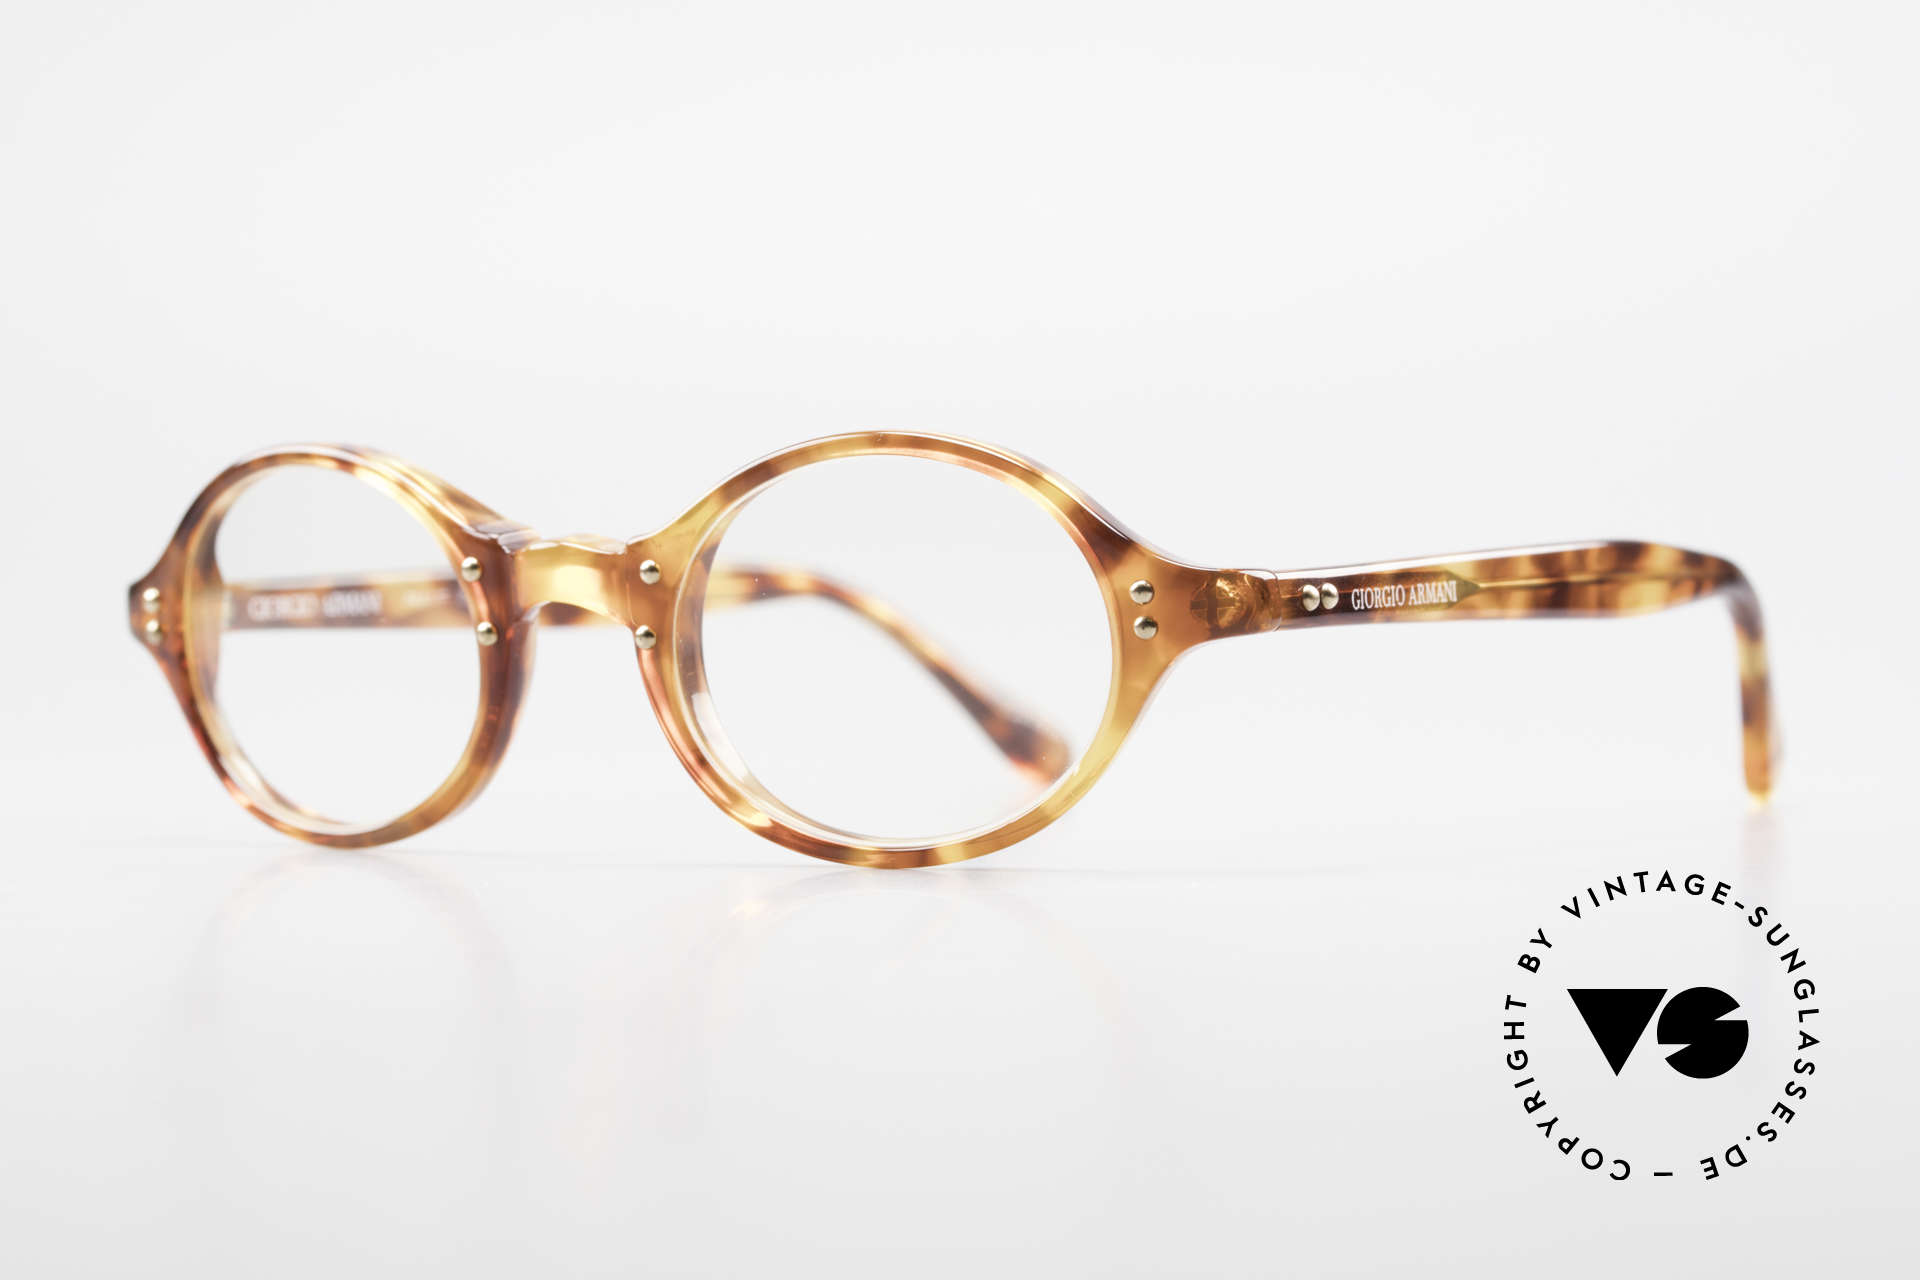 Giorgio Armani 342 Small Oval 90s Eyeglass-Frame, light tortoise frame with golden rivets in TOP-quality, Made for Men and Women